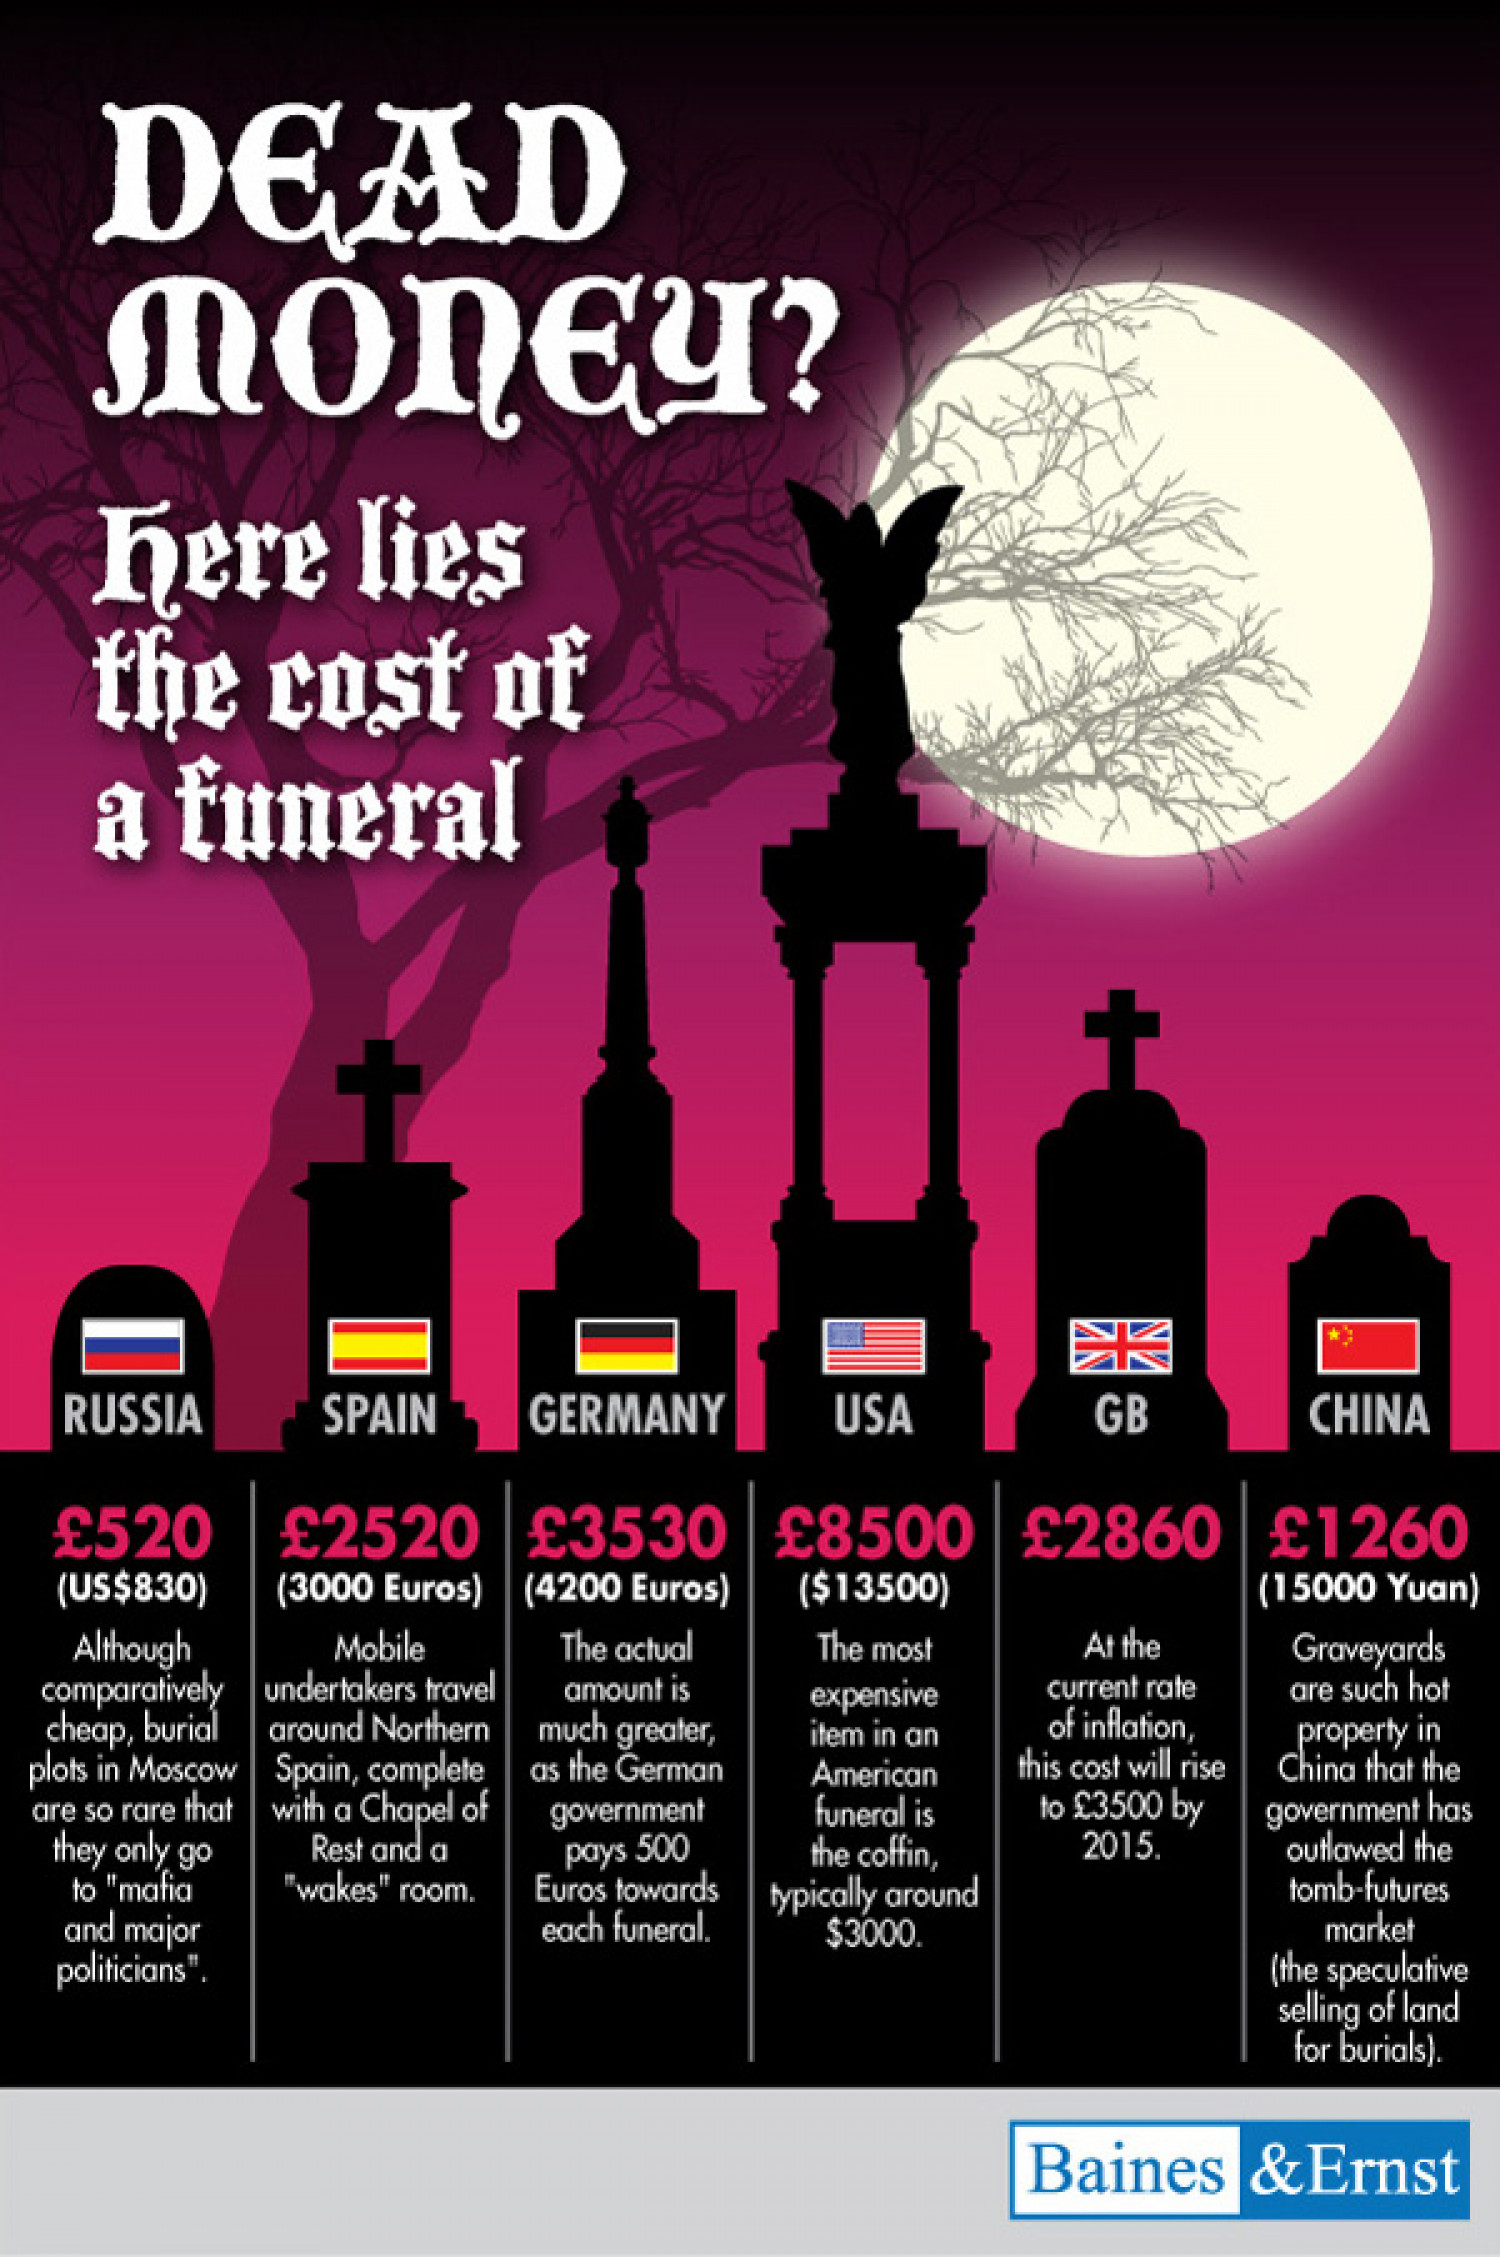 Here Lies the Cost of a Funeral [Infographic] Infographic